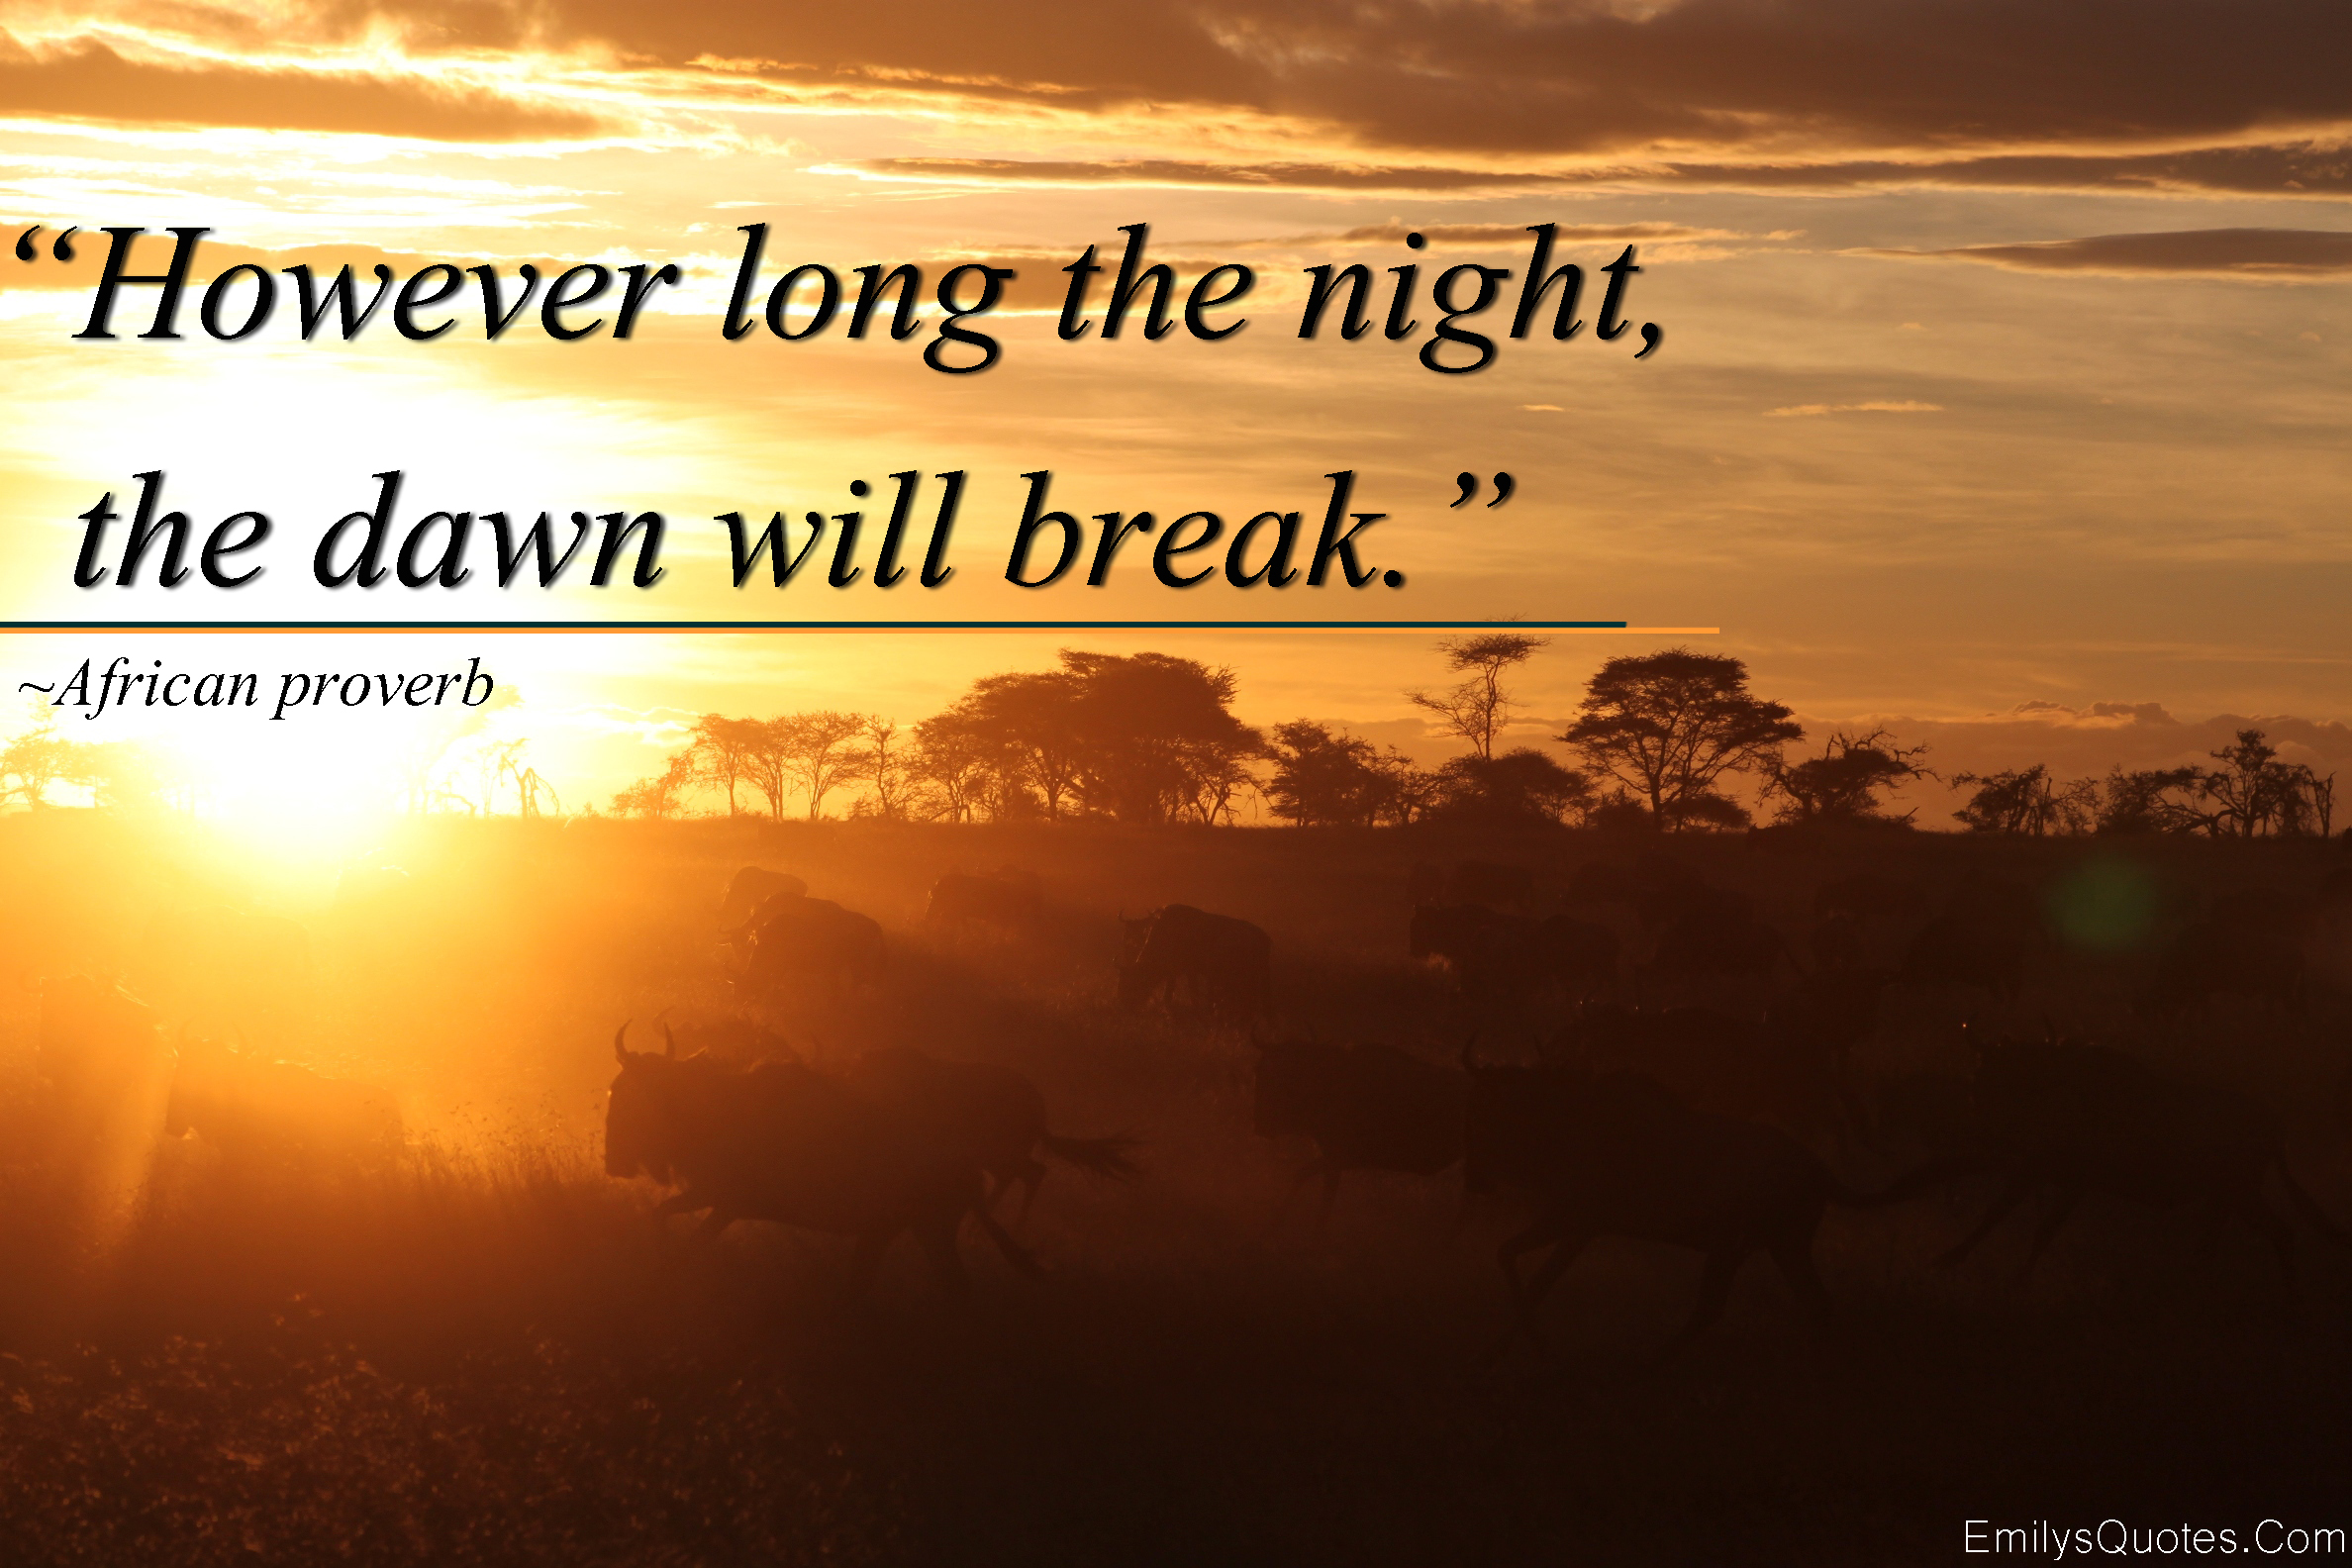 however long the night the dawn will break essay help